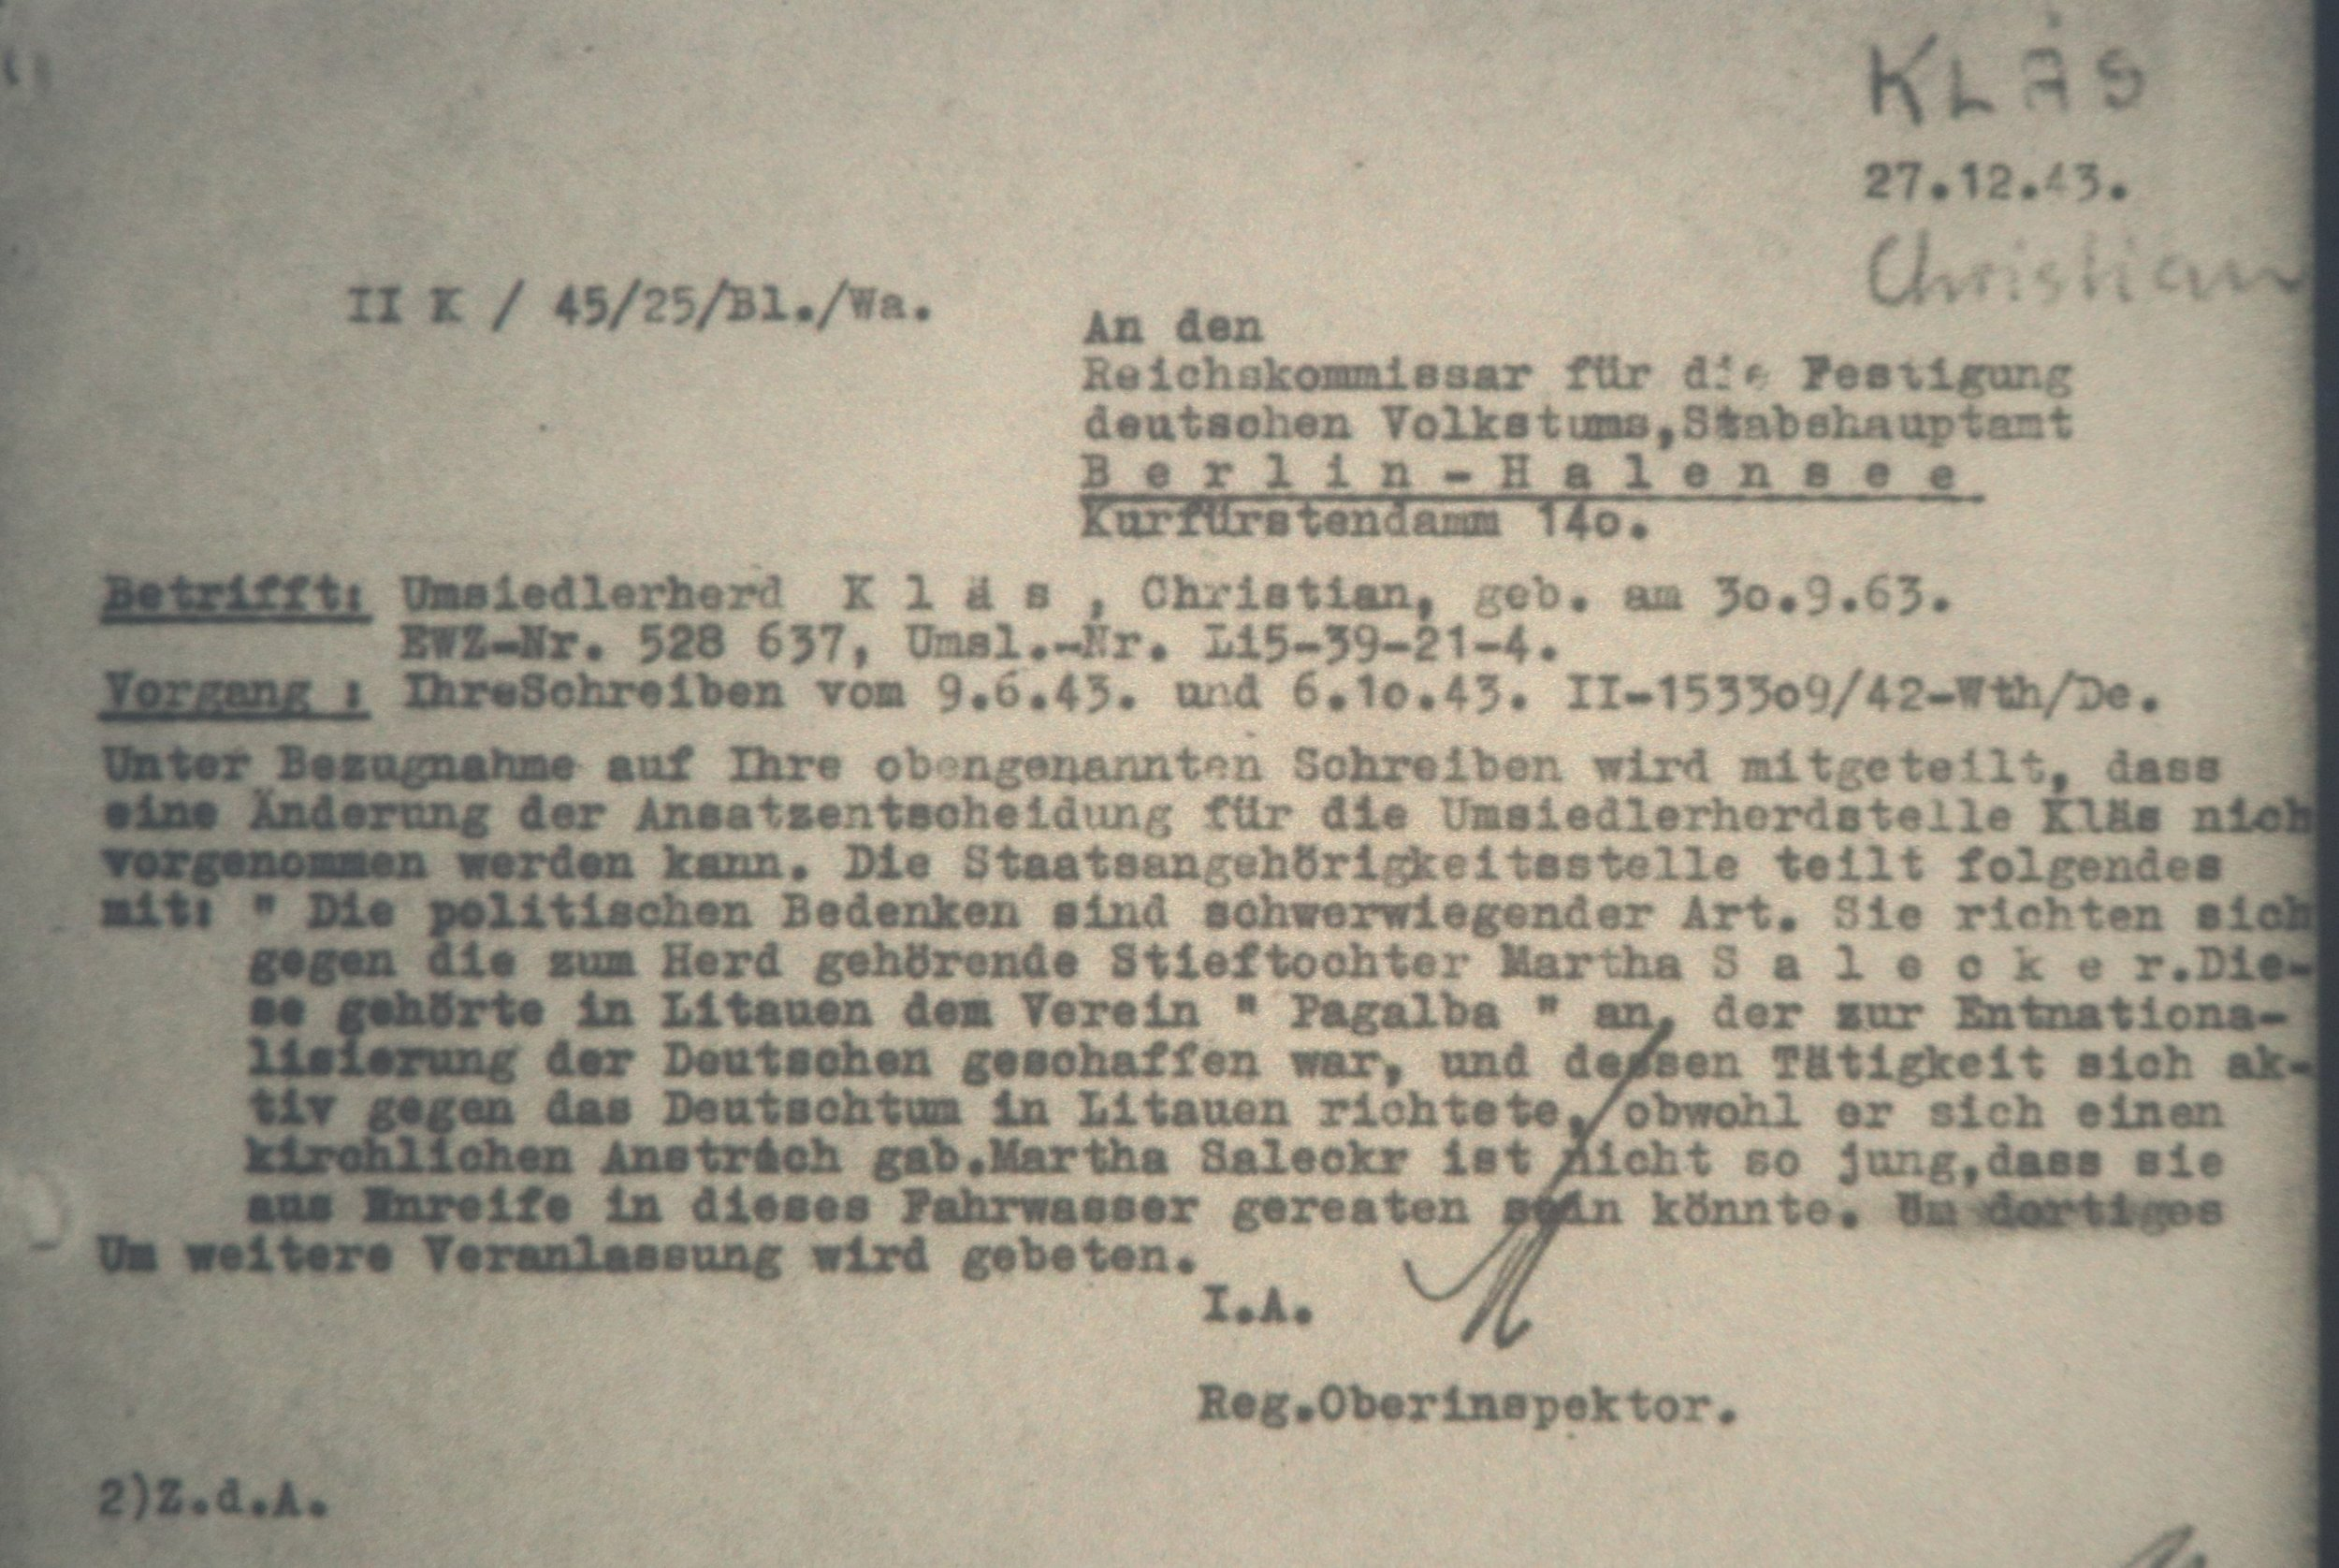 27th of December, 1943 letter to the RKFVD